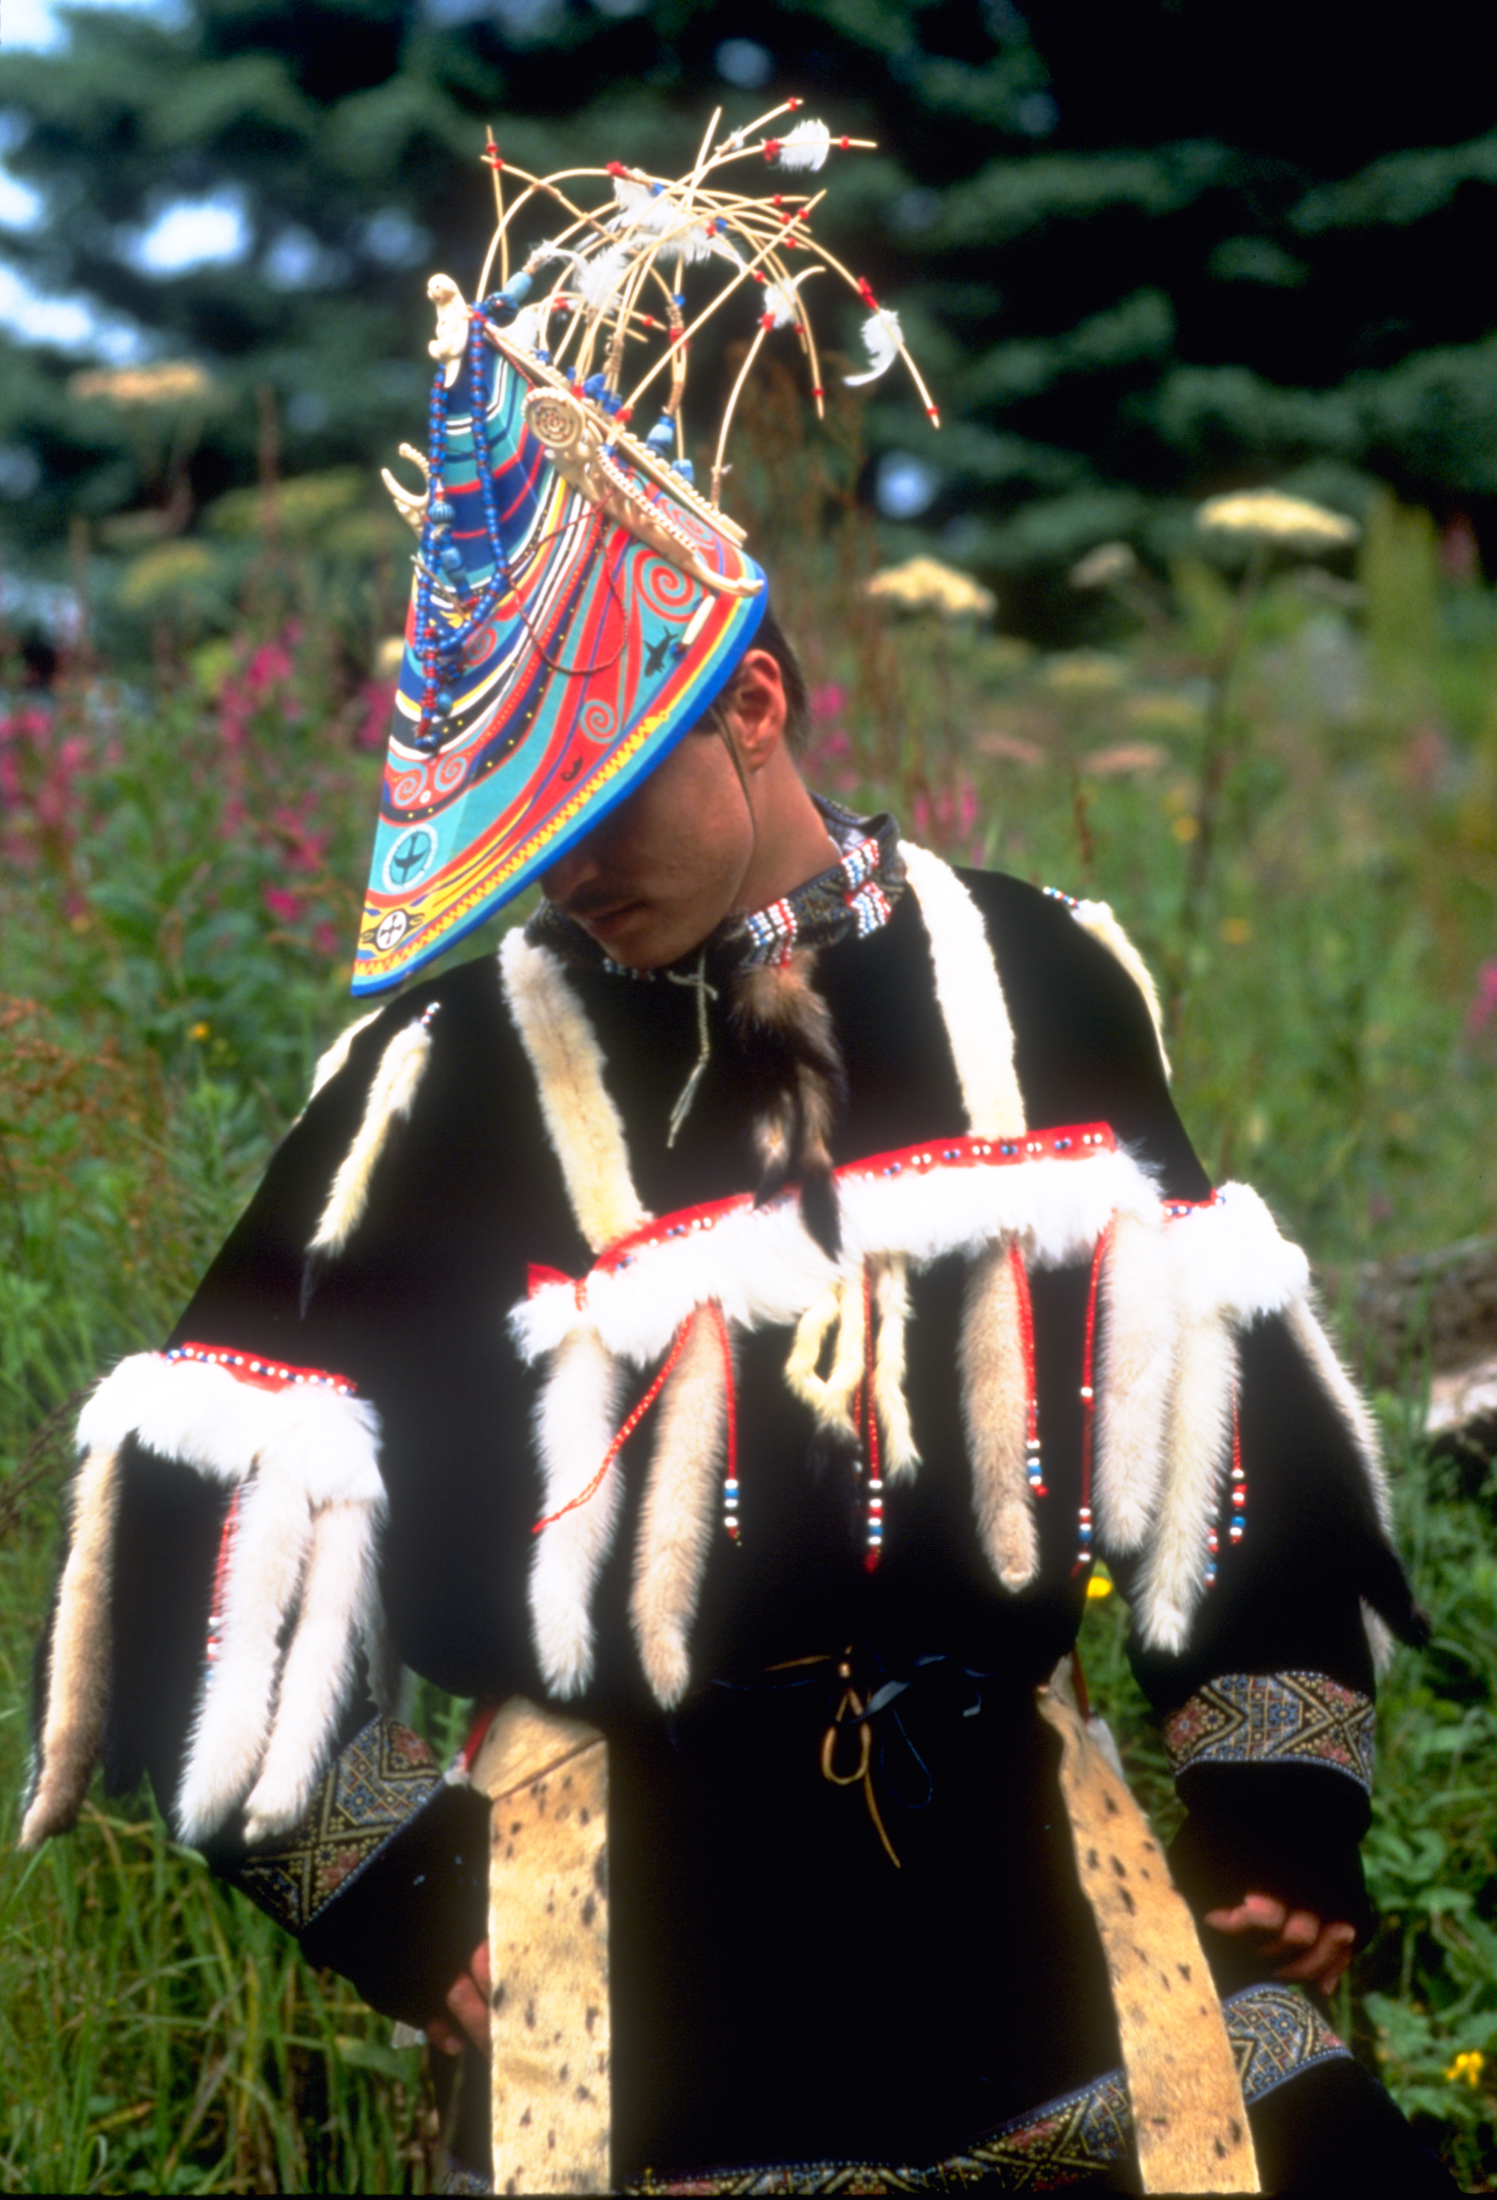 population alaskan native inuit The inuit lived in an area comprising a large part of northern earth, including northern canada parts often with little light therefore, the people of the arctic were forced to adapt to the harsh surroundings in order to survive they adapted every aspect of their.